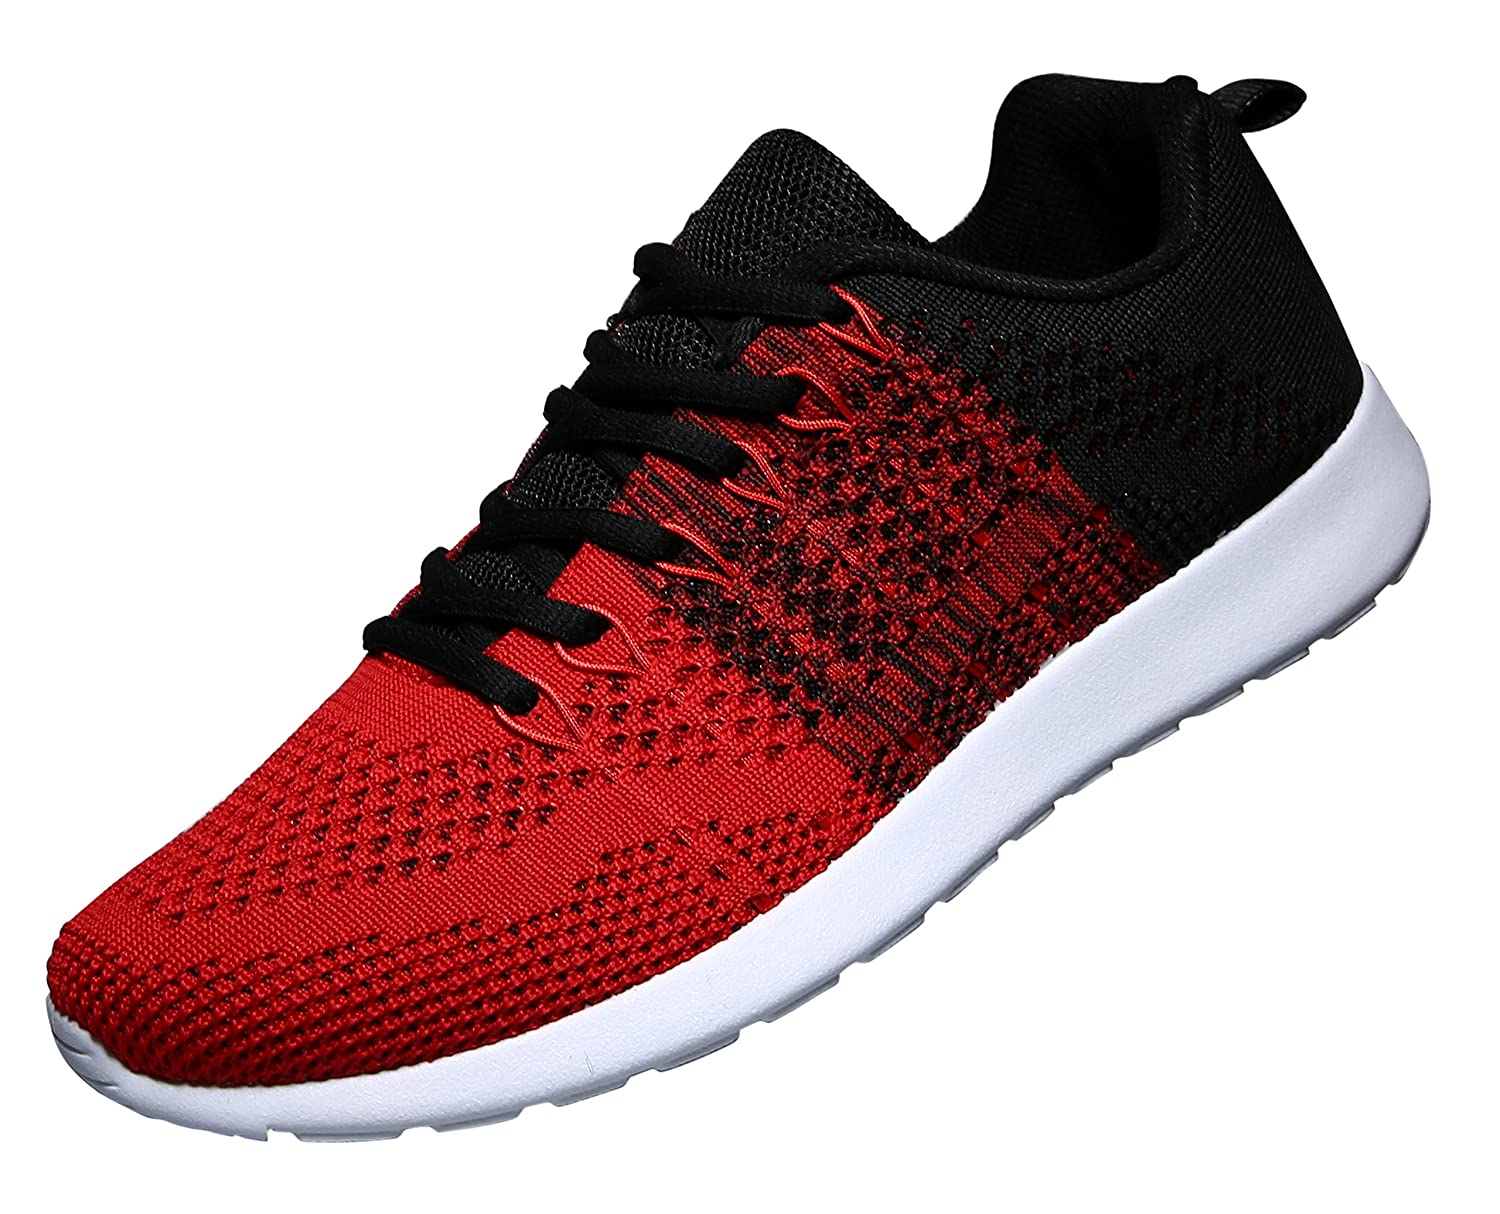 WELMEE Men's Knit Breathable Casual Sneakers Lightweight Athletic Tennis Walking Running Shoes 003